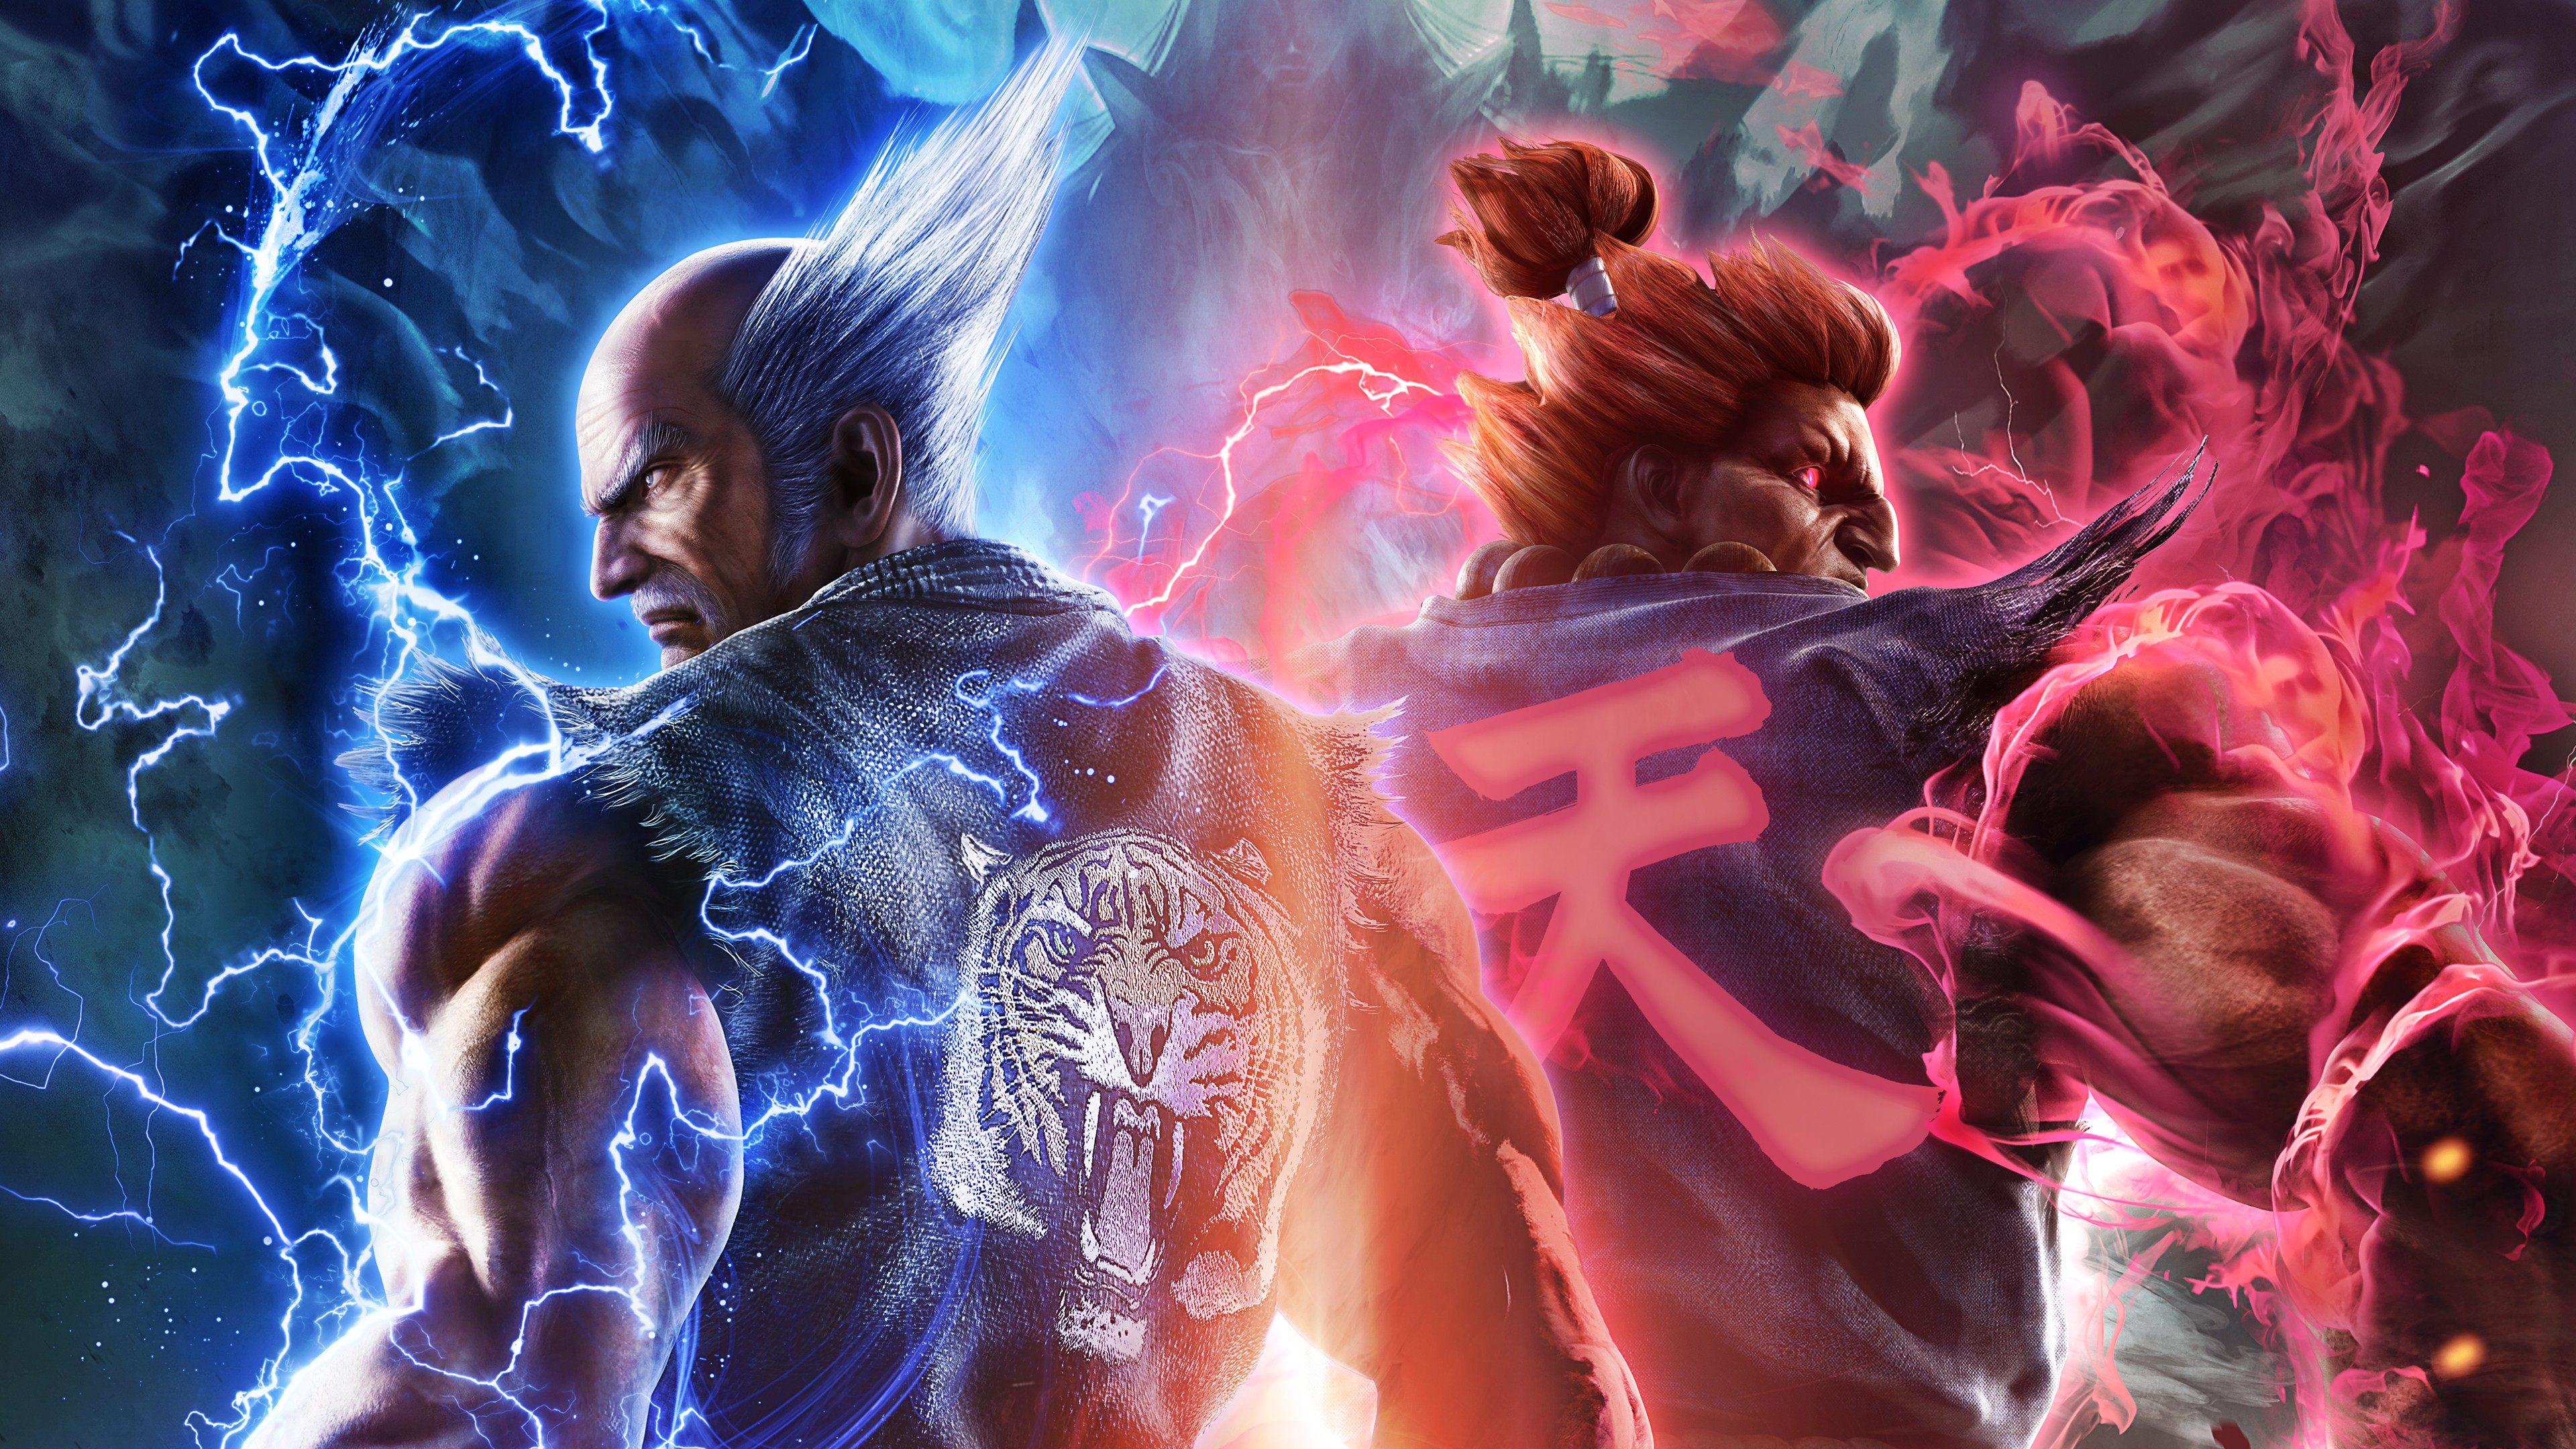 16 Heihachi Mishima Hd Wallpapers Background Images Wallpaper Abyss